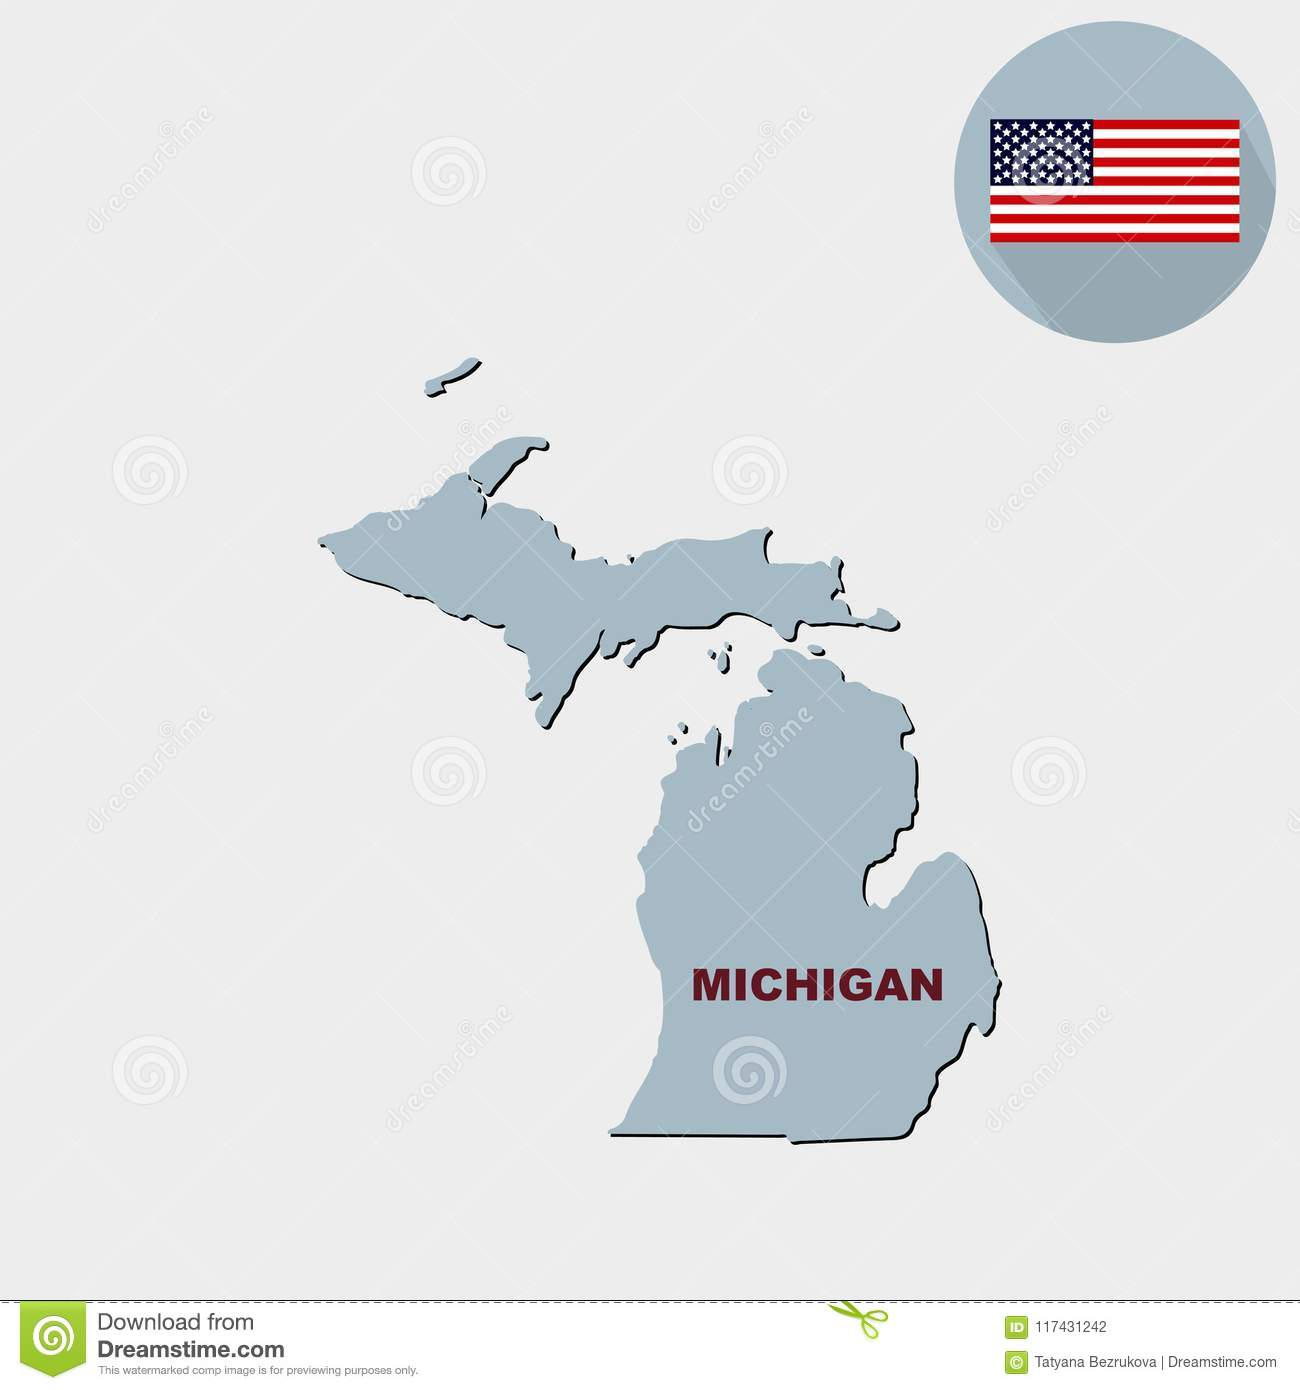 Map Of The U.S. State Of Michigan On A Grey Background. American ...